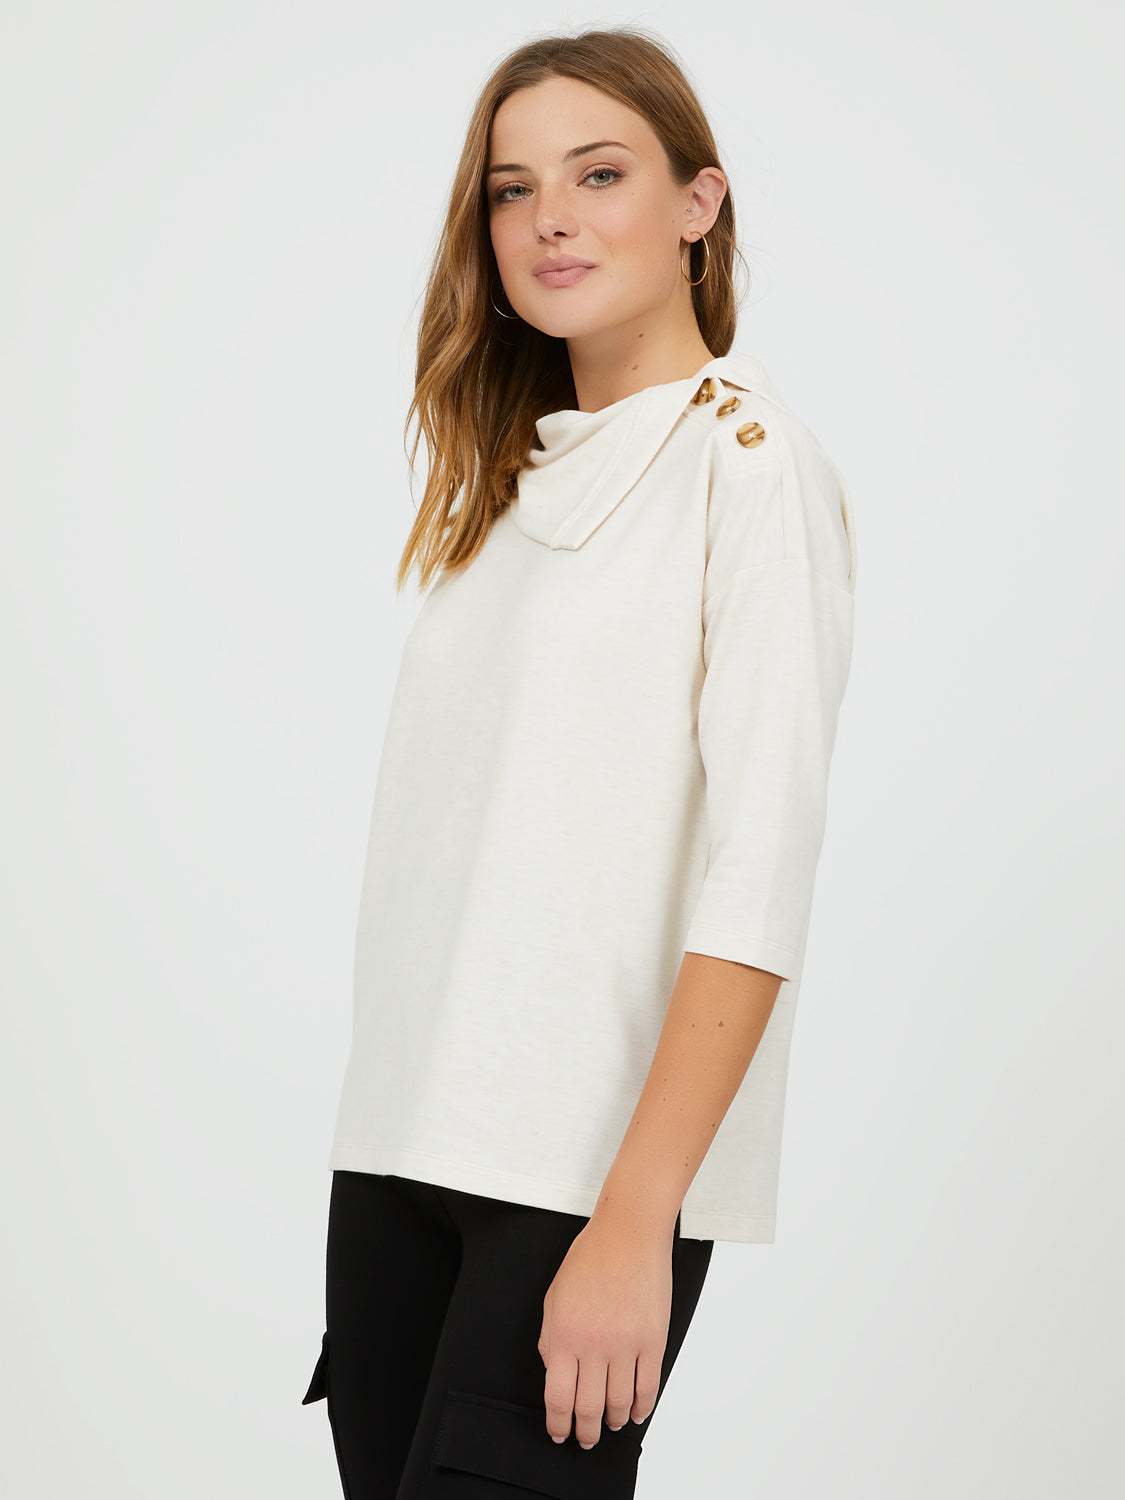 ¾ Sleeve Mélange French Terry Top